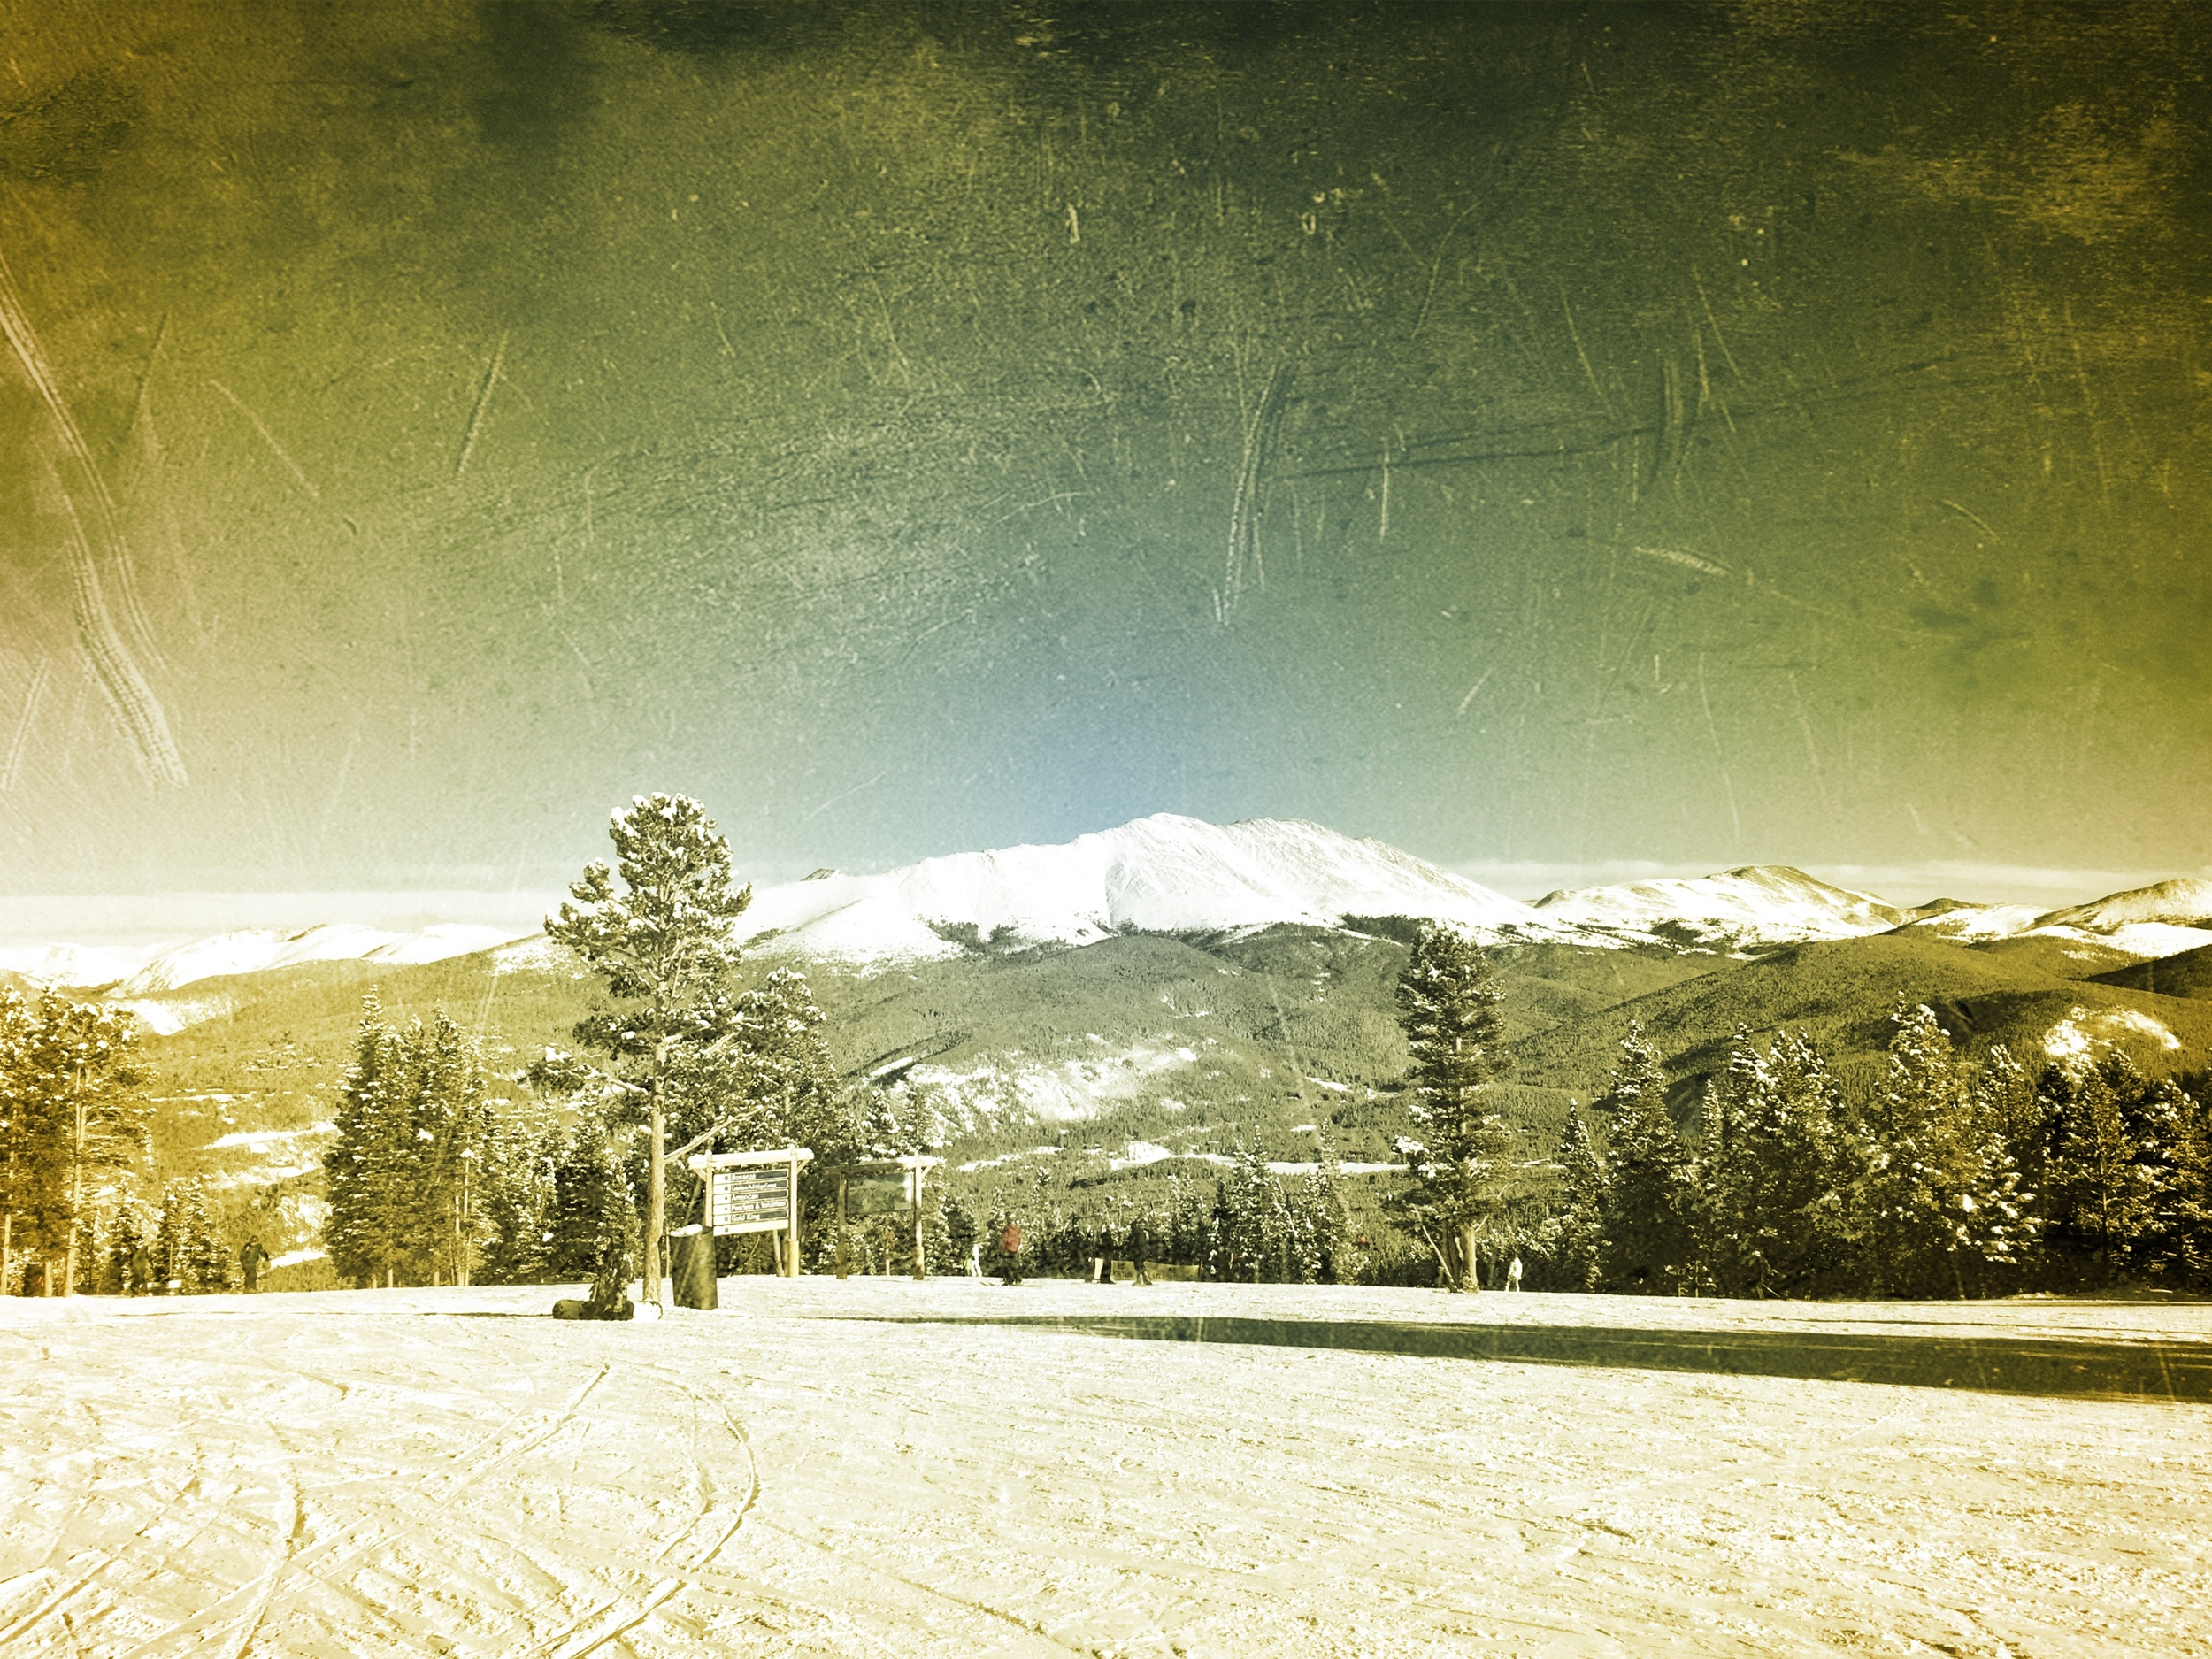 Grungy Slopes, Breckenridge Colorado, The Wedgewood Lodge 18.jpg